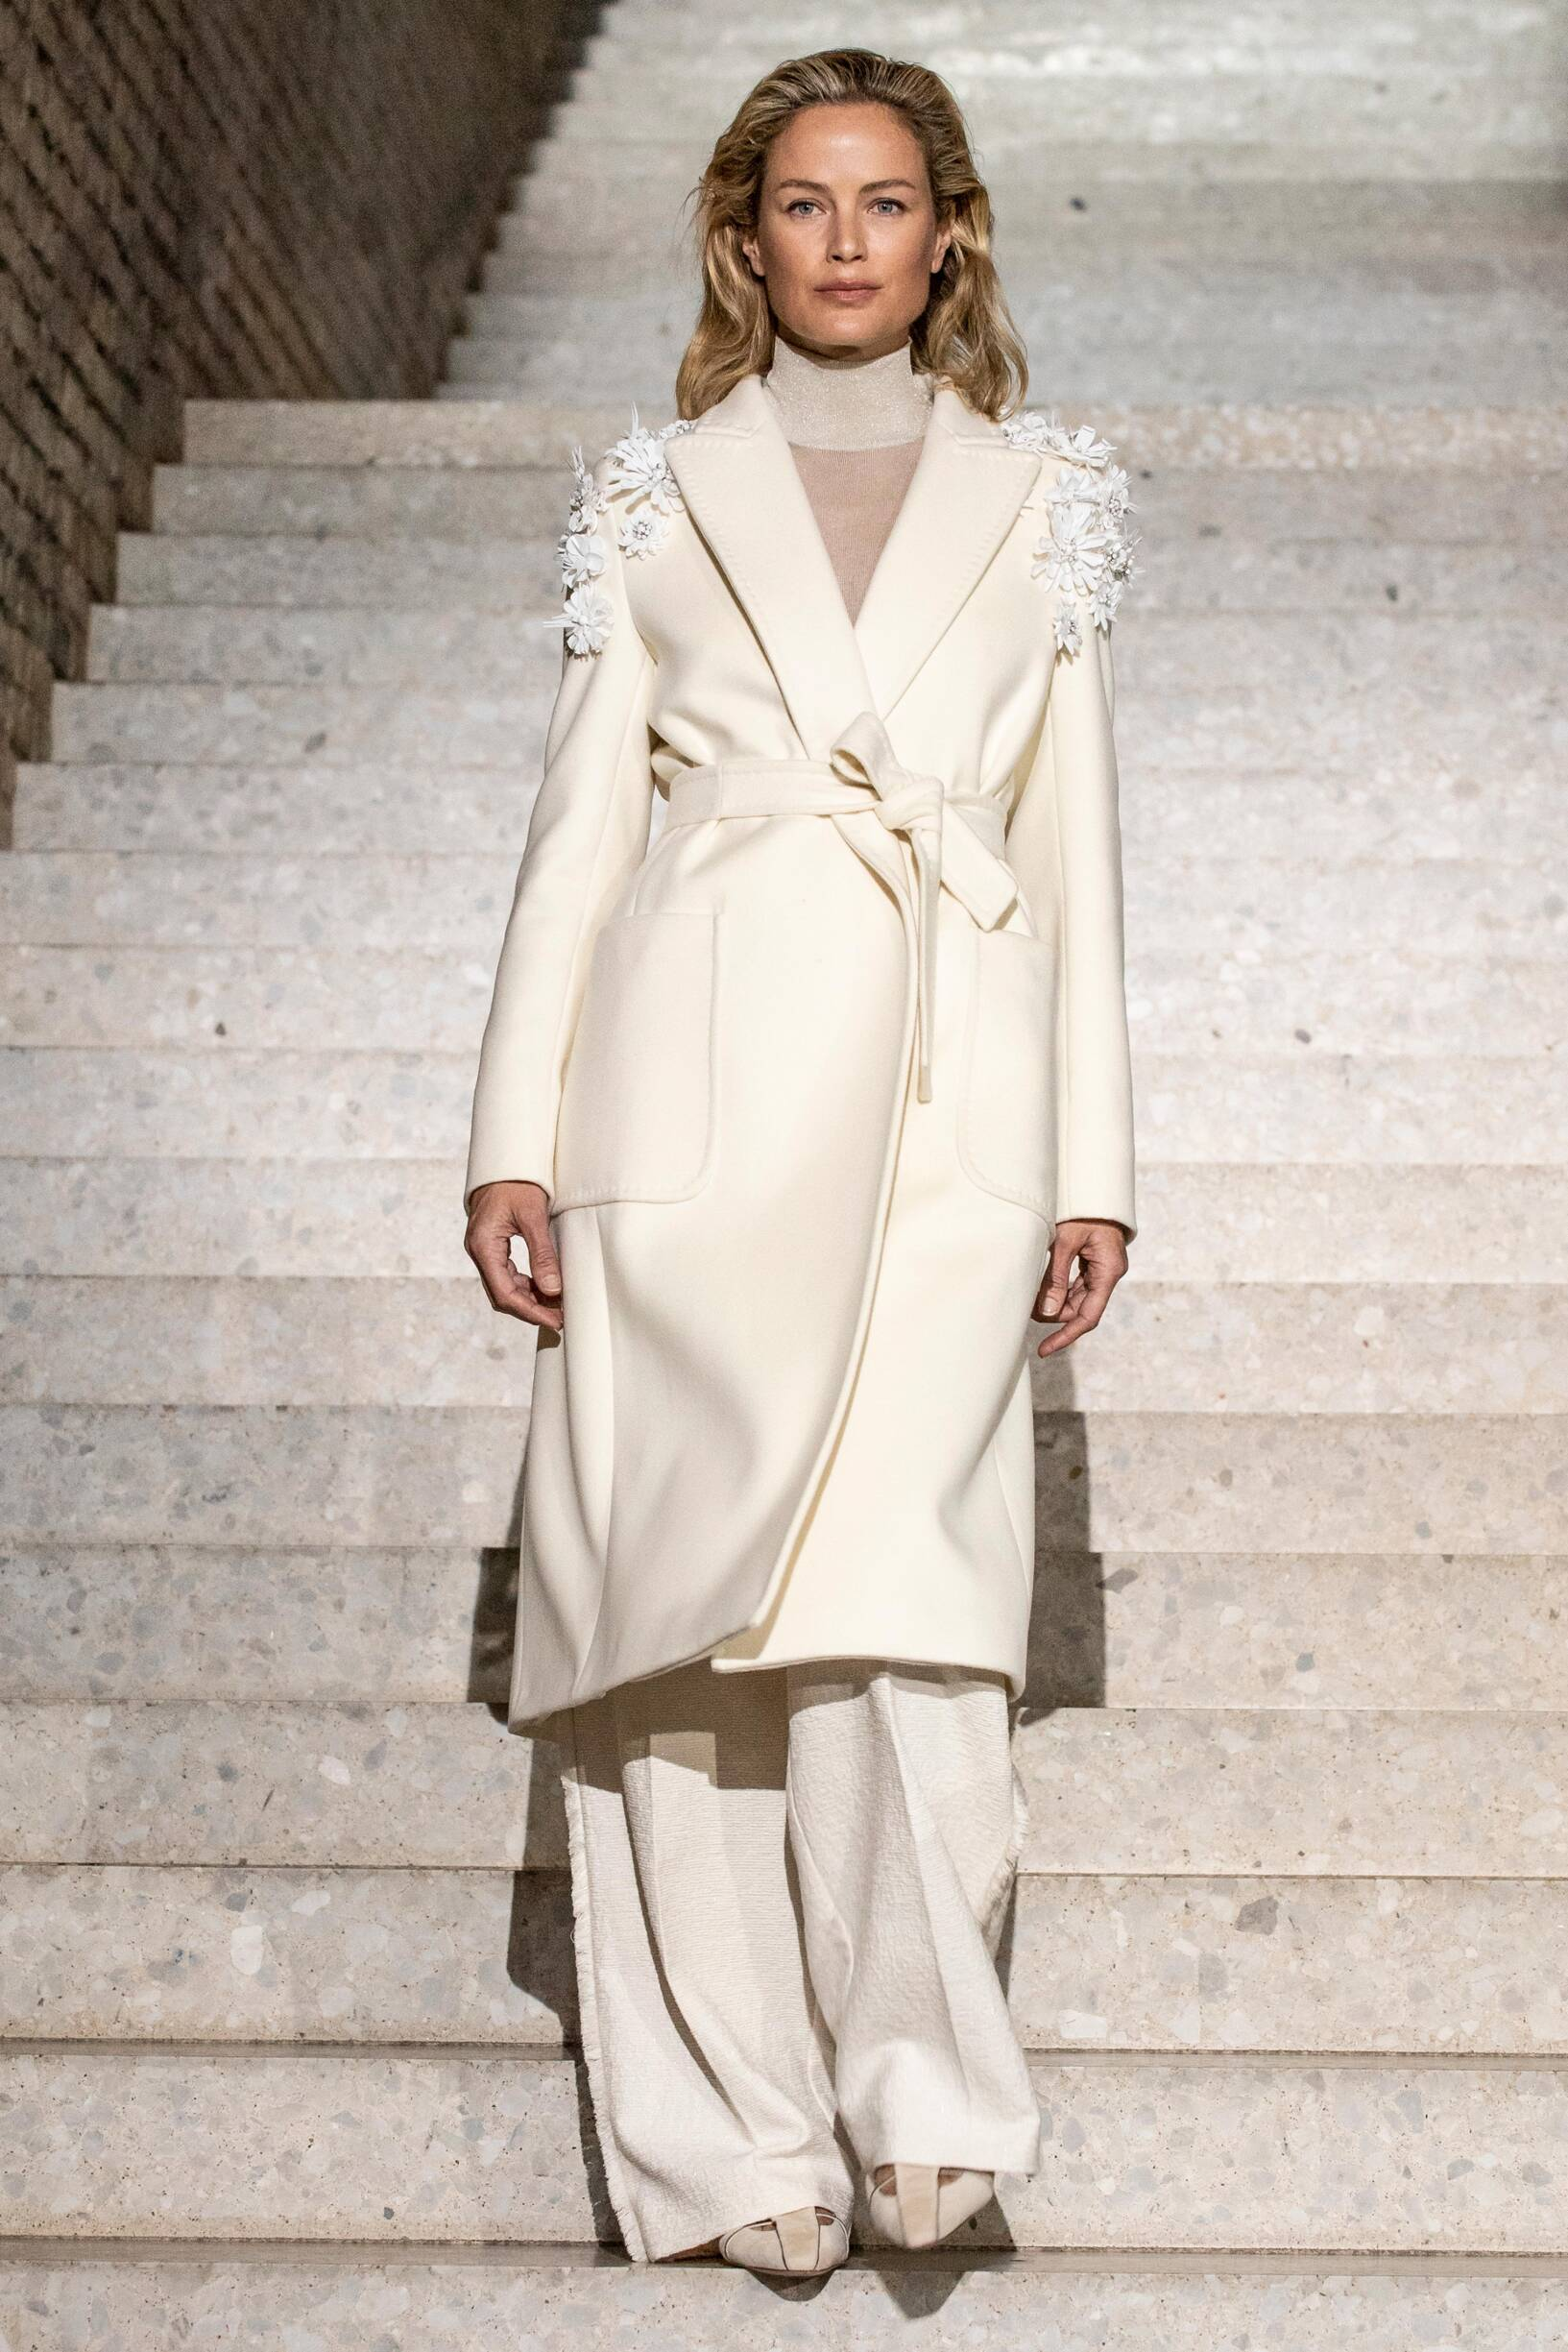 Max Mara Resort 2020 Collection Look 49 Berlin